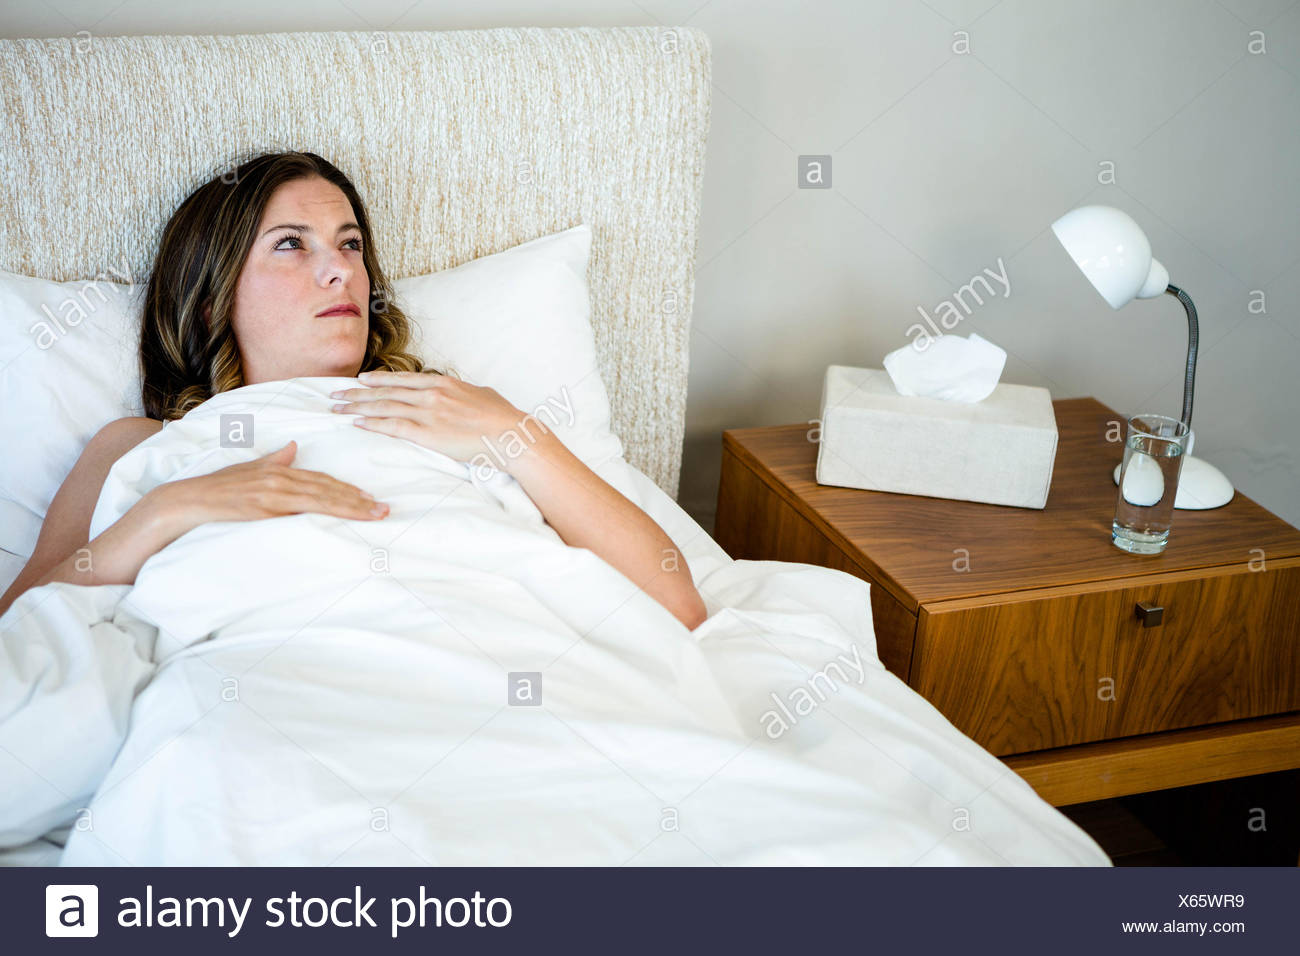 sick woman lying in bed looking unwell - Stock Image